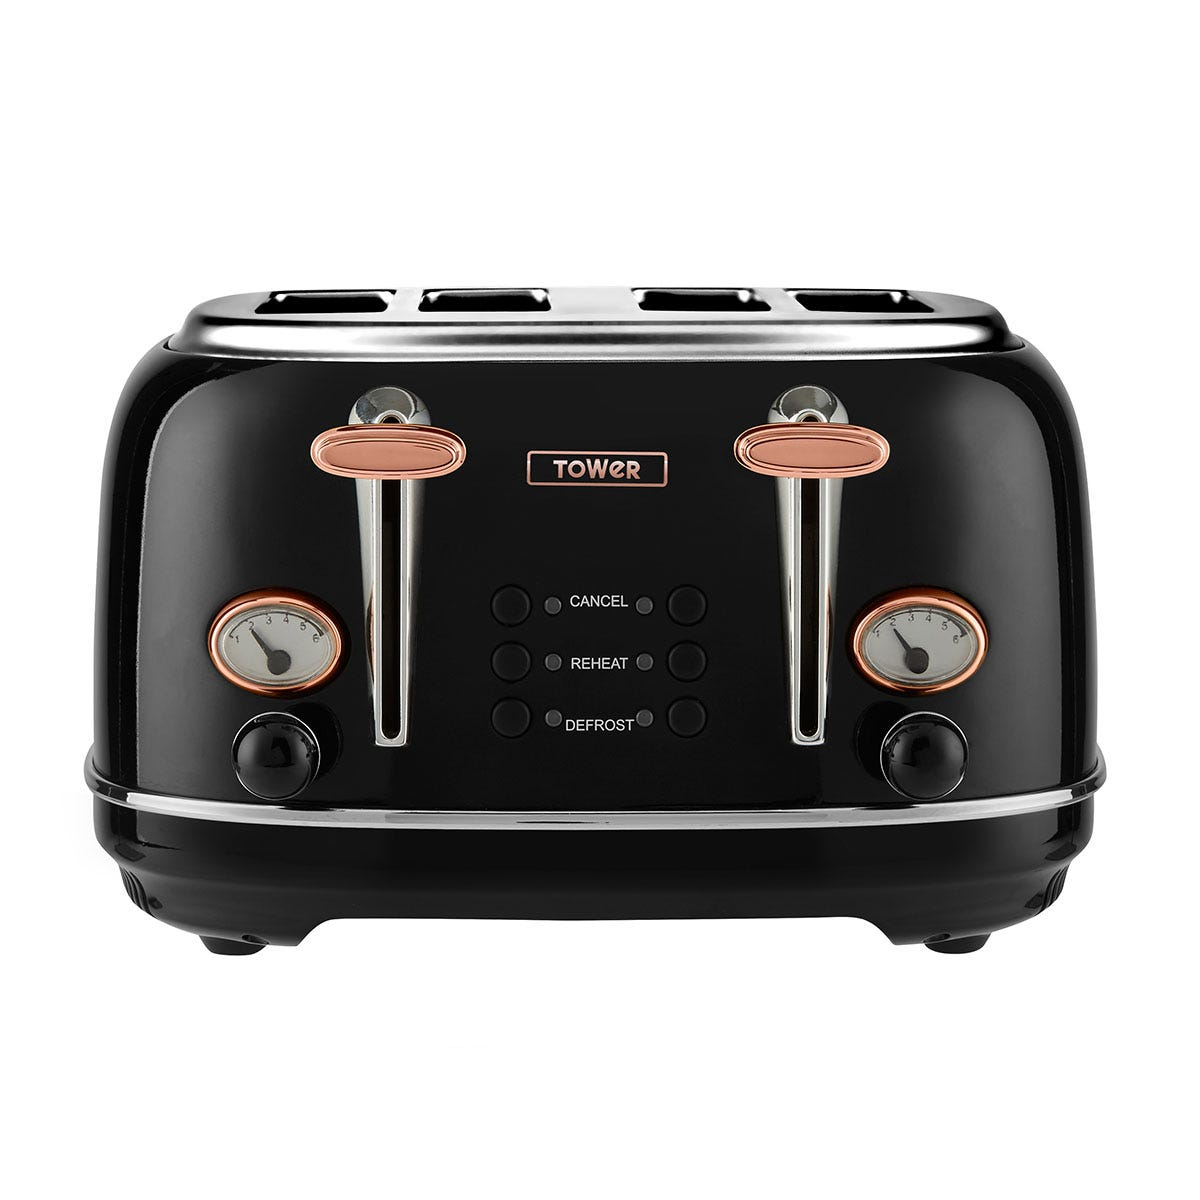 Tower T20017 1630W 4-Slice Stainless Steel Toaster - Black